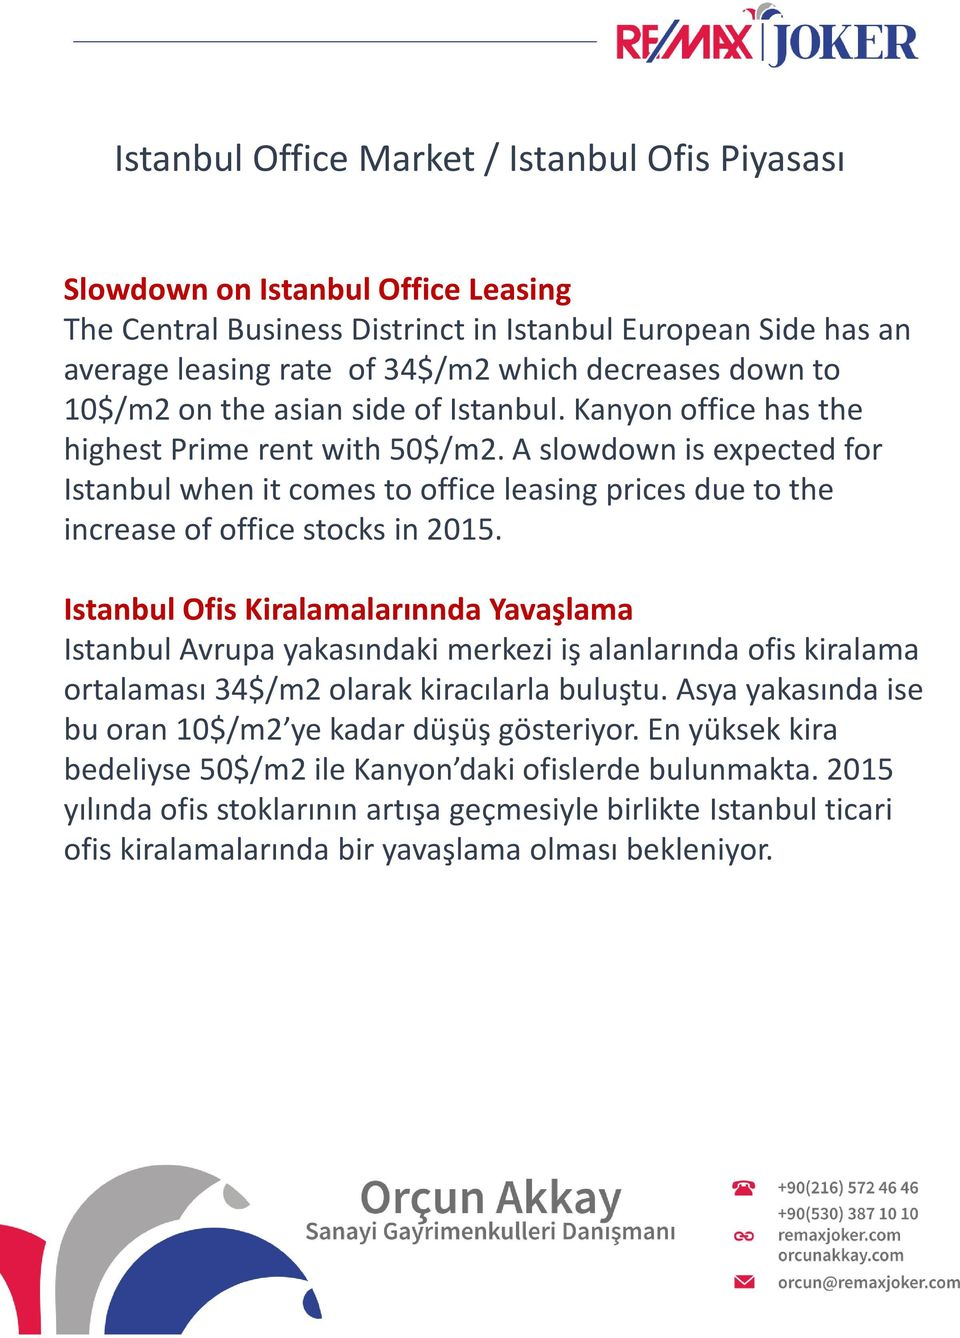 A slowdown is expected for Istanbul when it comes to office leasing prices due to the increase of office stocks in 2015.